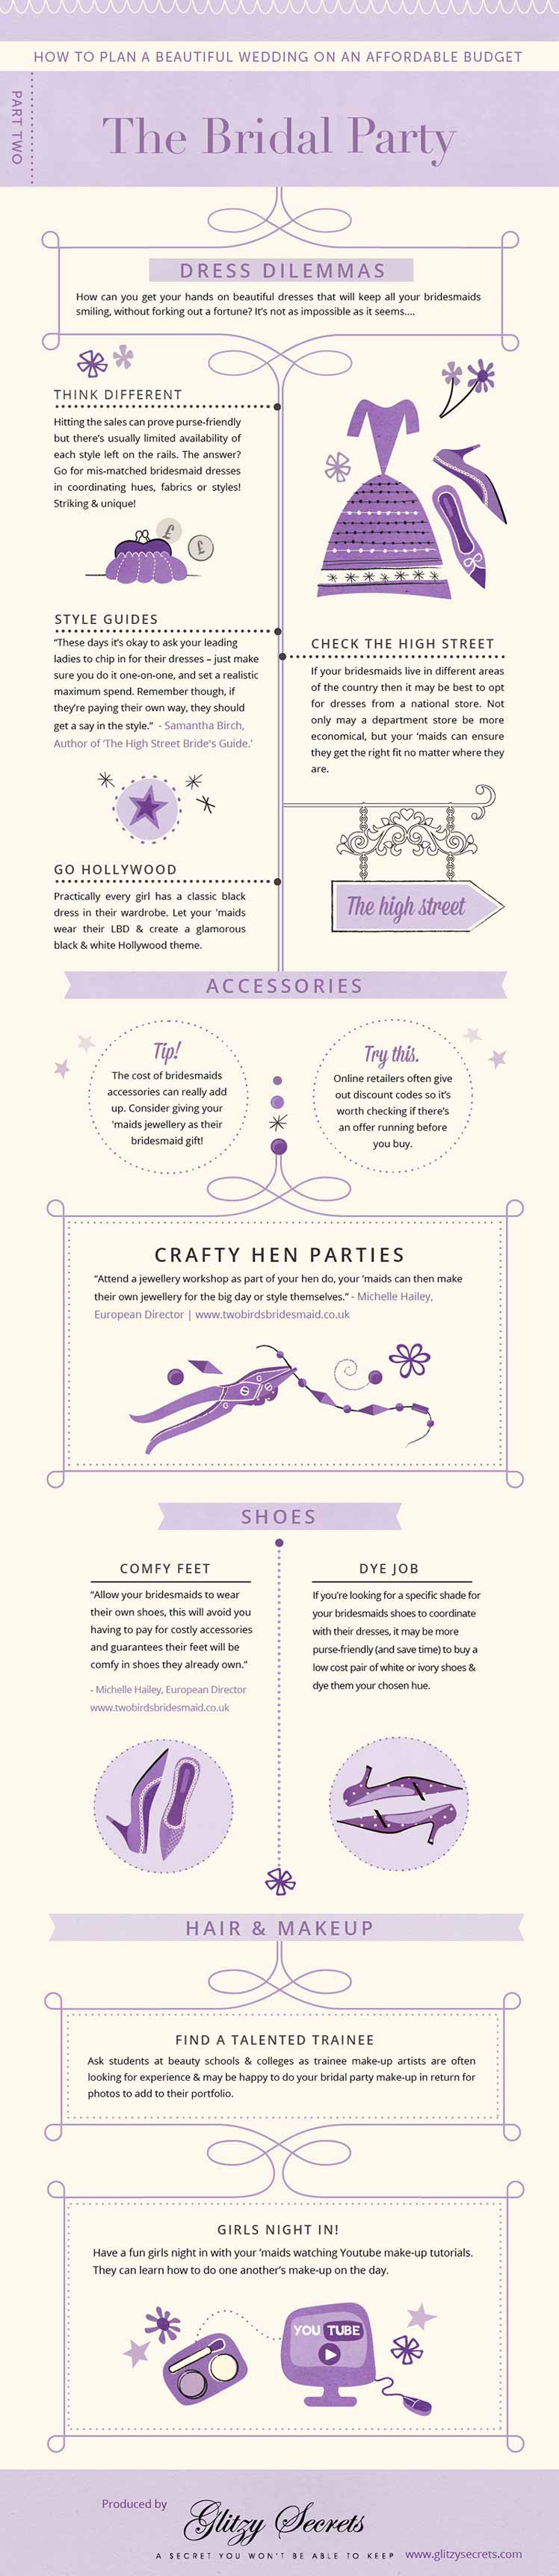 Bridal party budget ideas